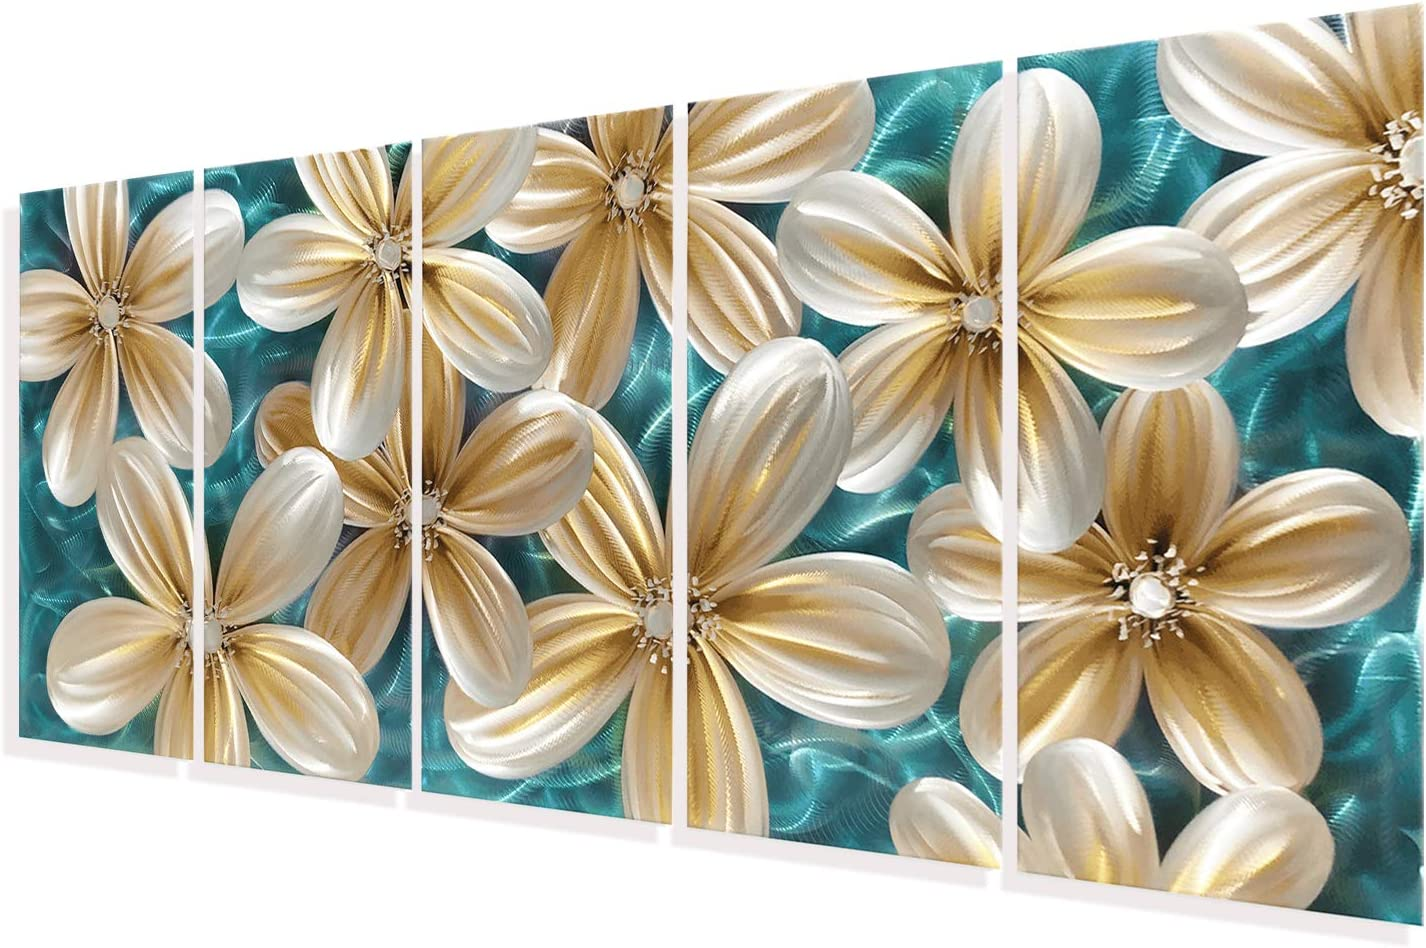 3D Modern Metal Wall Art Large Teal and Gold Decor Bright Colored Flower Polished Artwork on Aluminum for Living Room Set of 5 Pieces